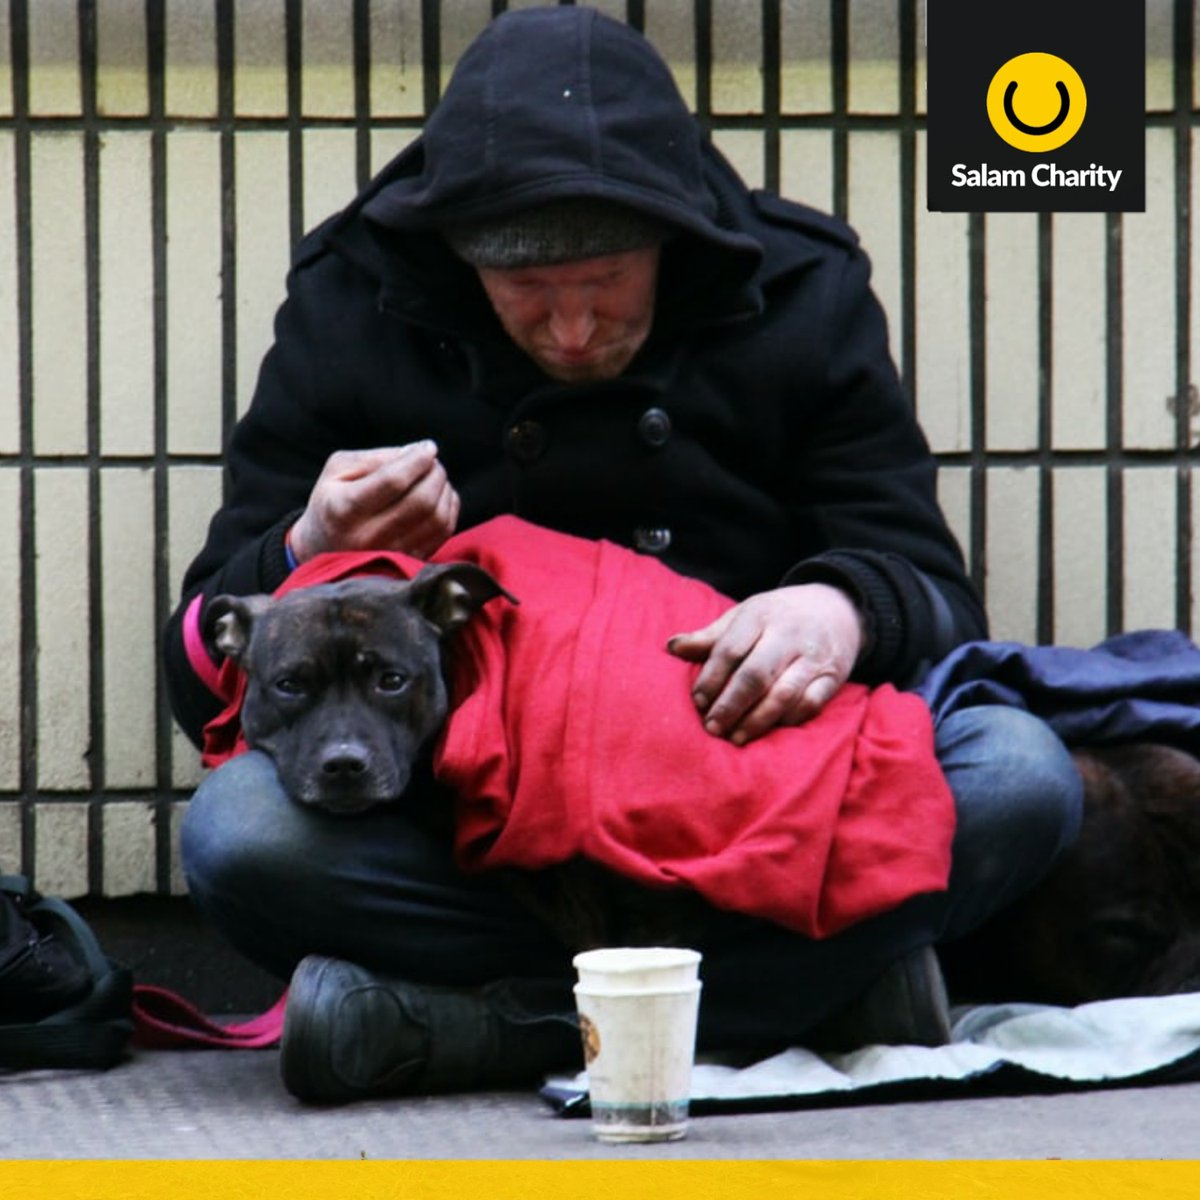 #thecoldtruth ❄️  With temperatures consistently hitting below zero, those living rough in the UK have no place to call home.  Please donate:  ______ #homeless #london #refugees #warm #charity #winter